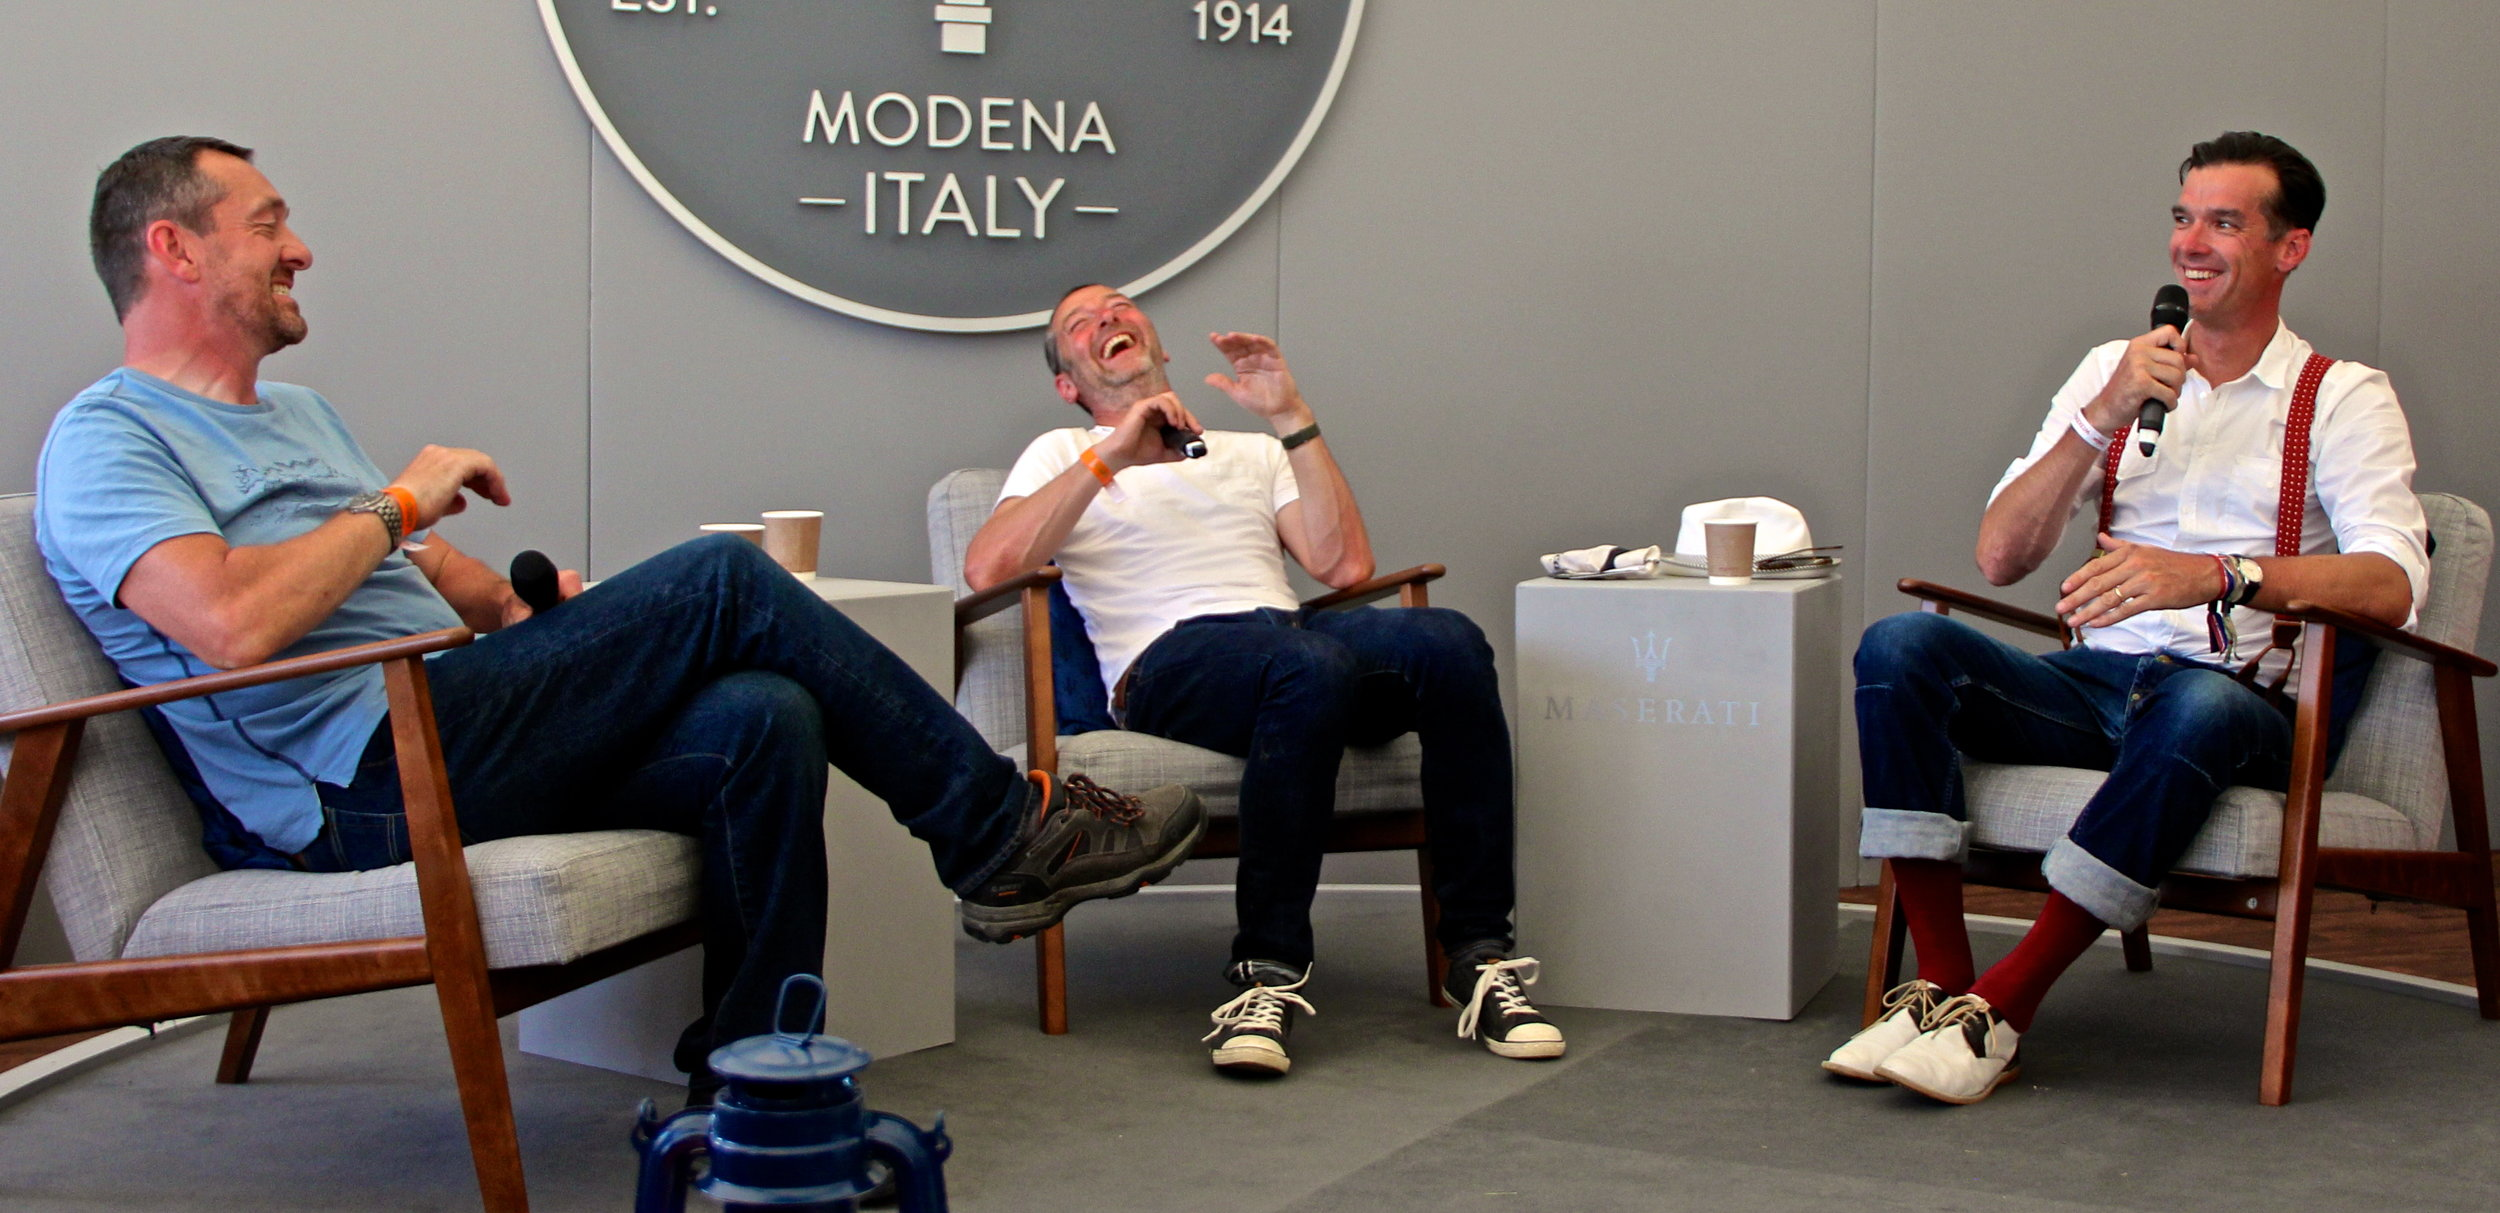 Chris Boardman, Ned Boulting and David Millar in relaxed mode in the Maserati Lounge